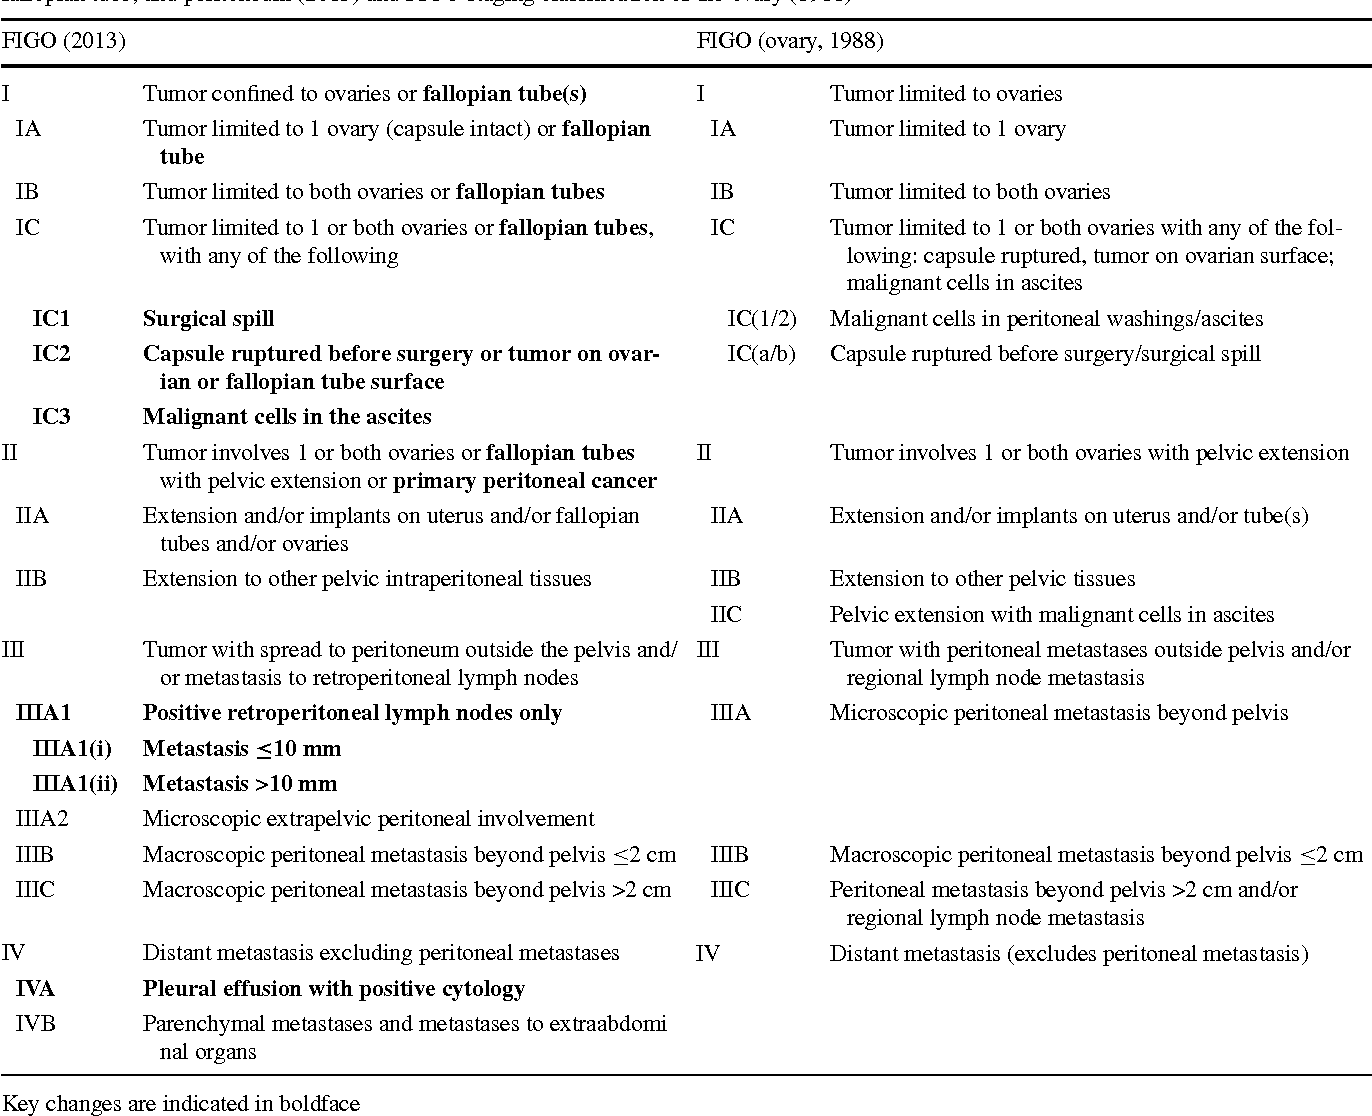 Table 1 From Revised Figo Staging System For Cancer Of The Ovary Fallopian Tube And Peritoneum Important Implications For Radiologists Semantic Scholar